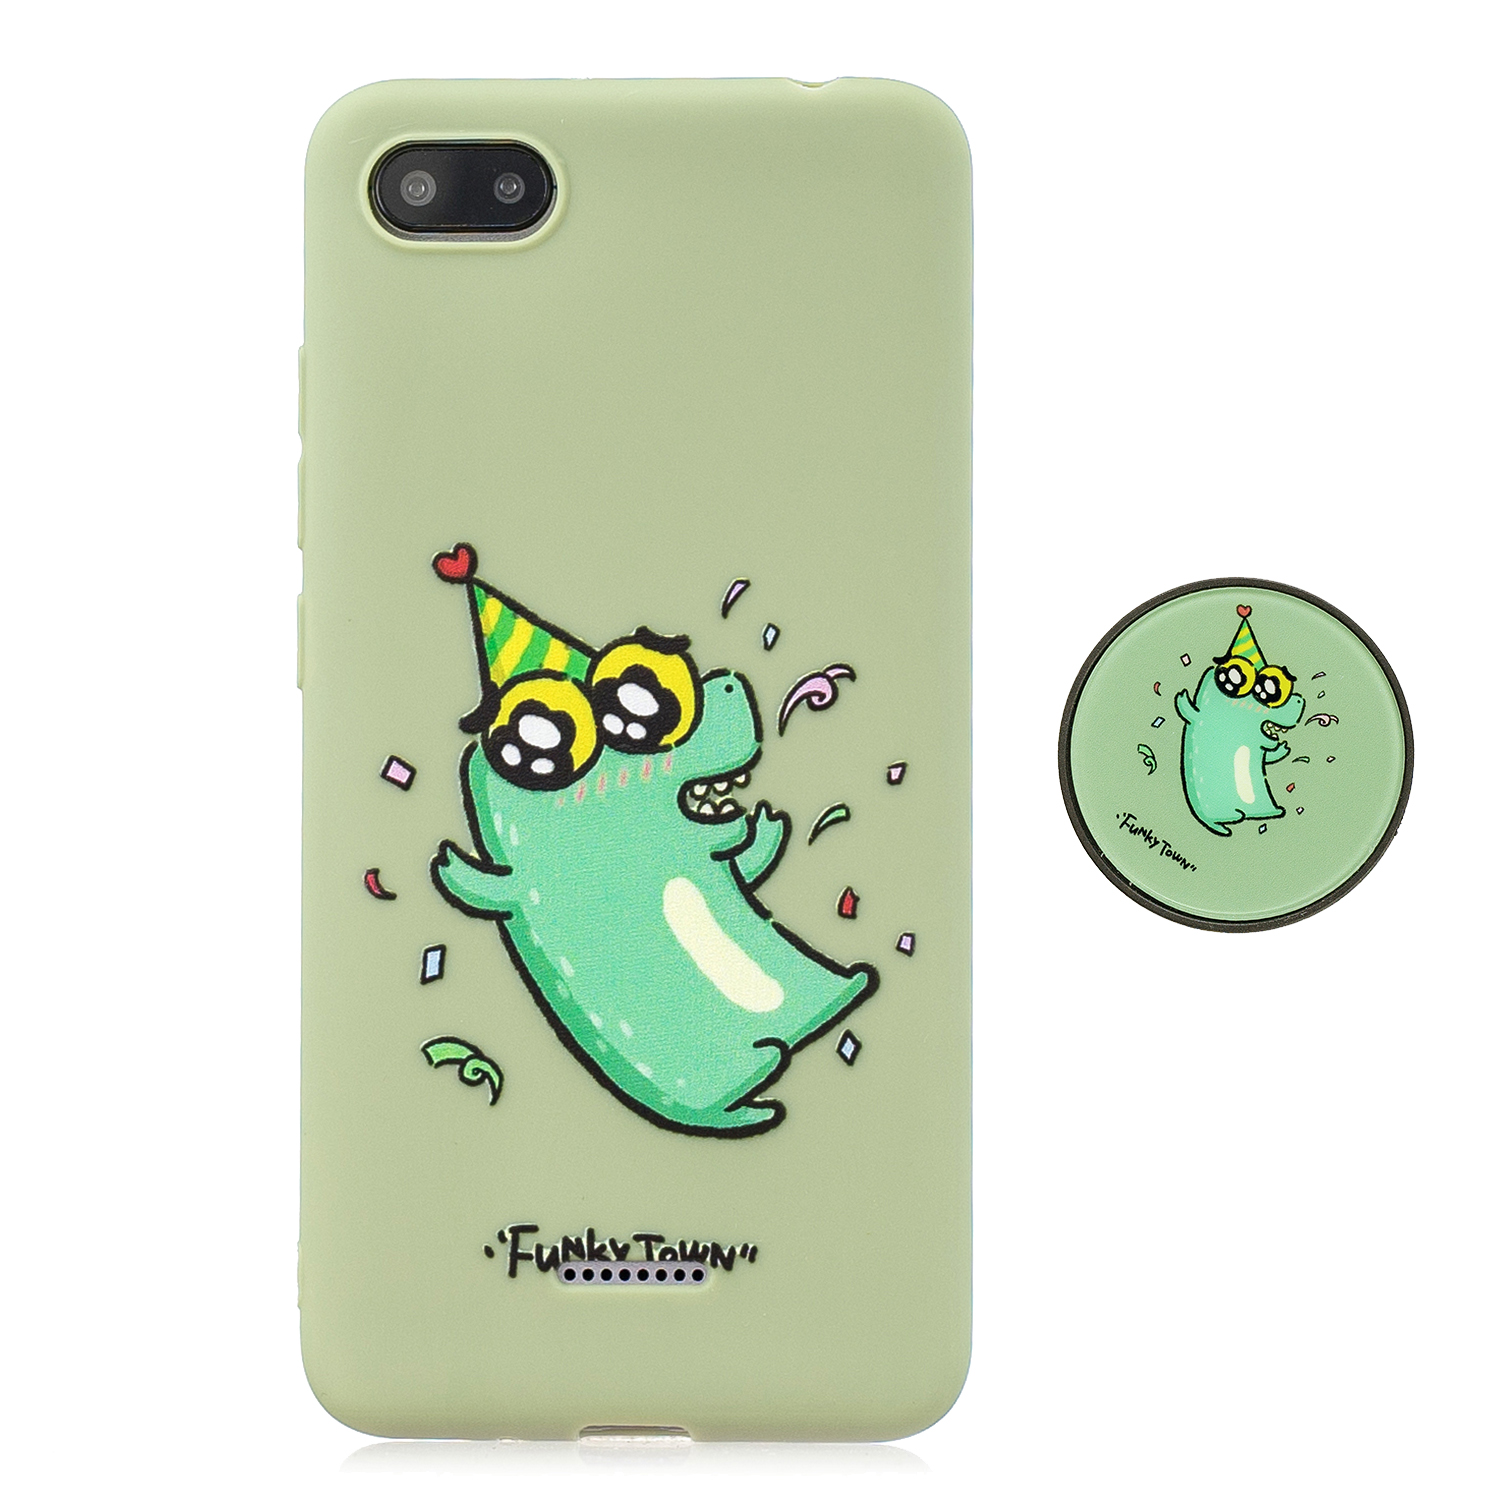 For Redmi 6A Phone Cases TPU Full Cover Cute Cartoon Painted Case Girls Mobile Phone Cover with Matched Pattern Adjustable Bracket 2